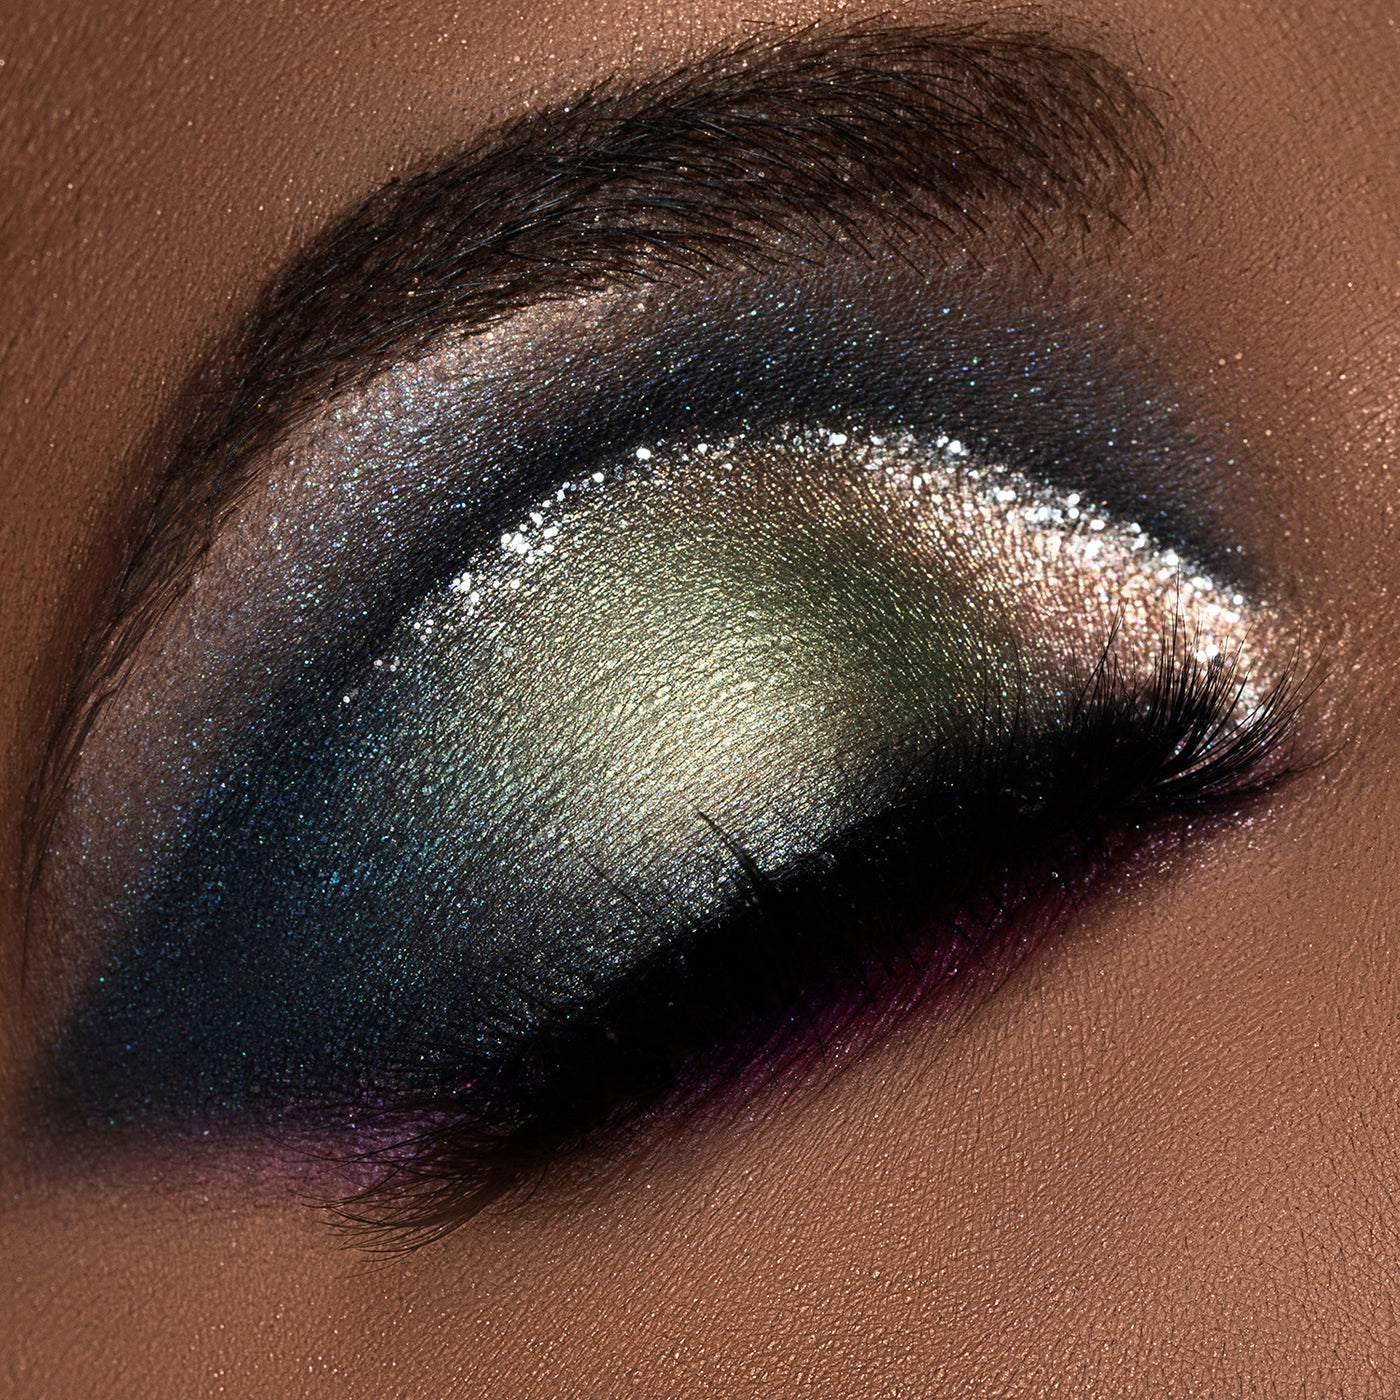 Solar Flare - 18 Color Baked Eyeshadow Palette by BH Cosmetics #20